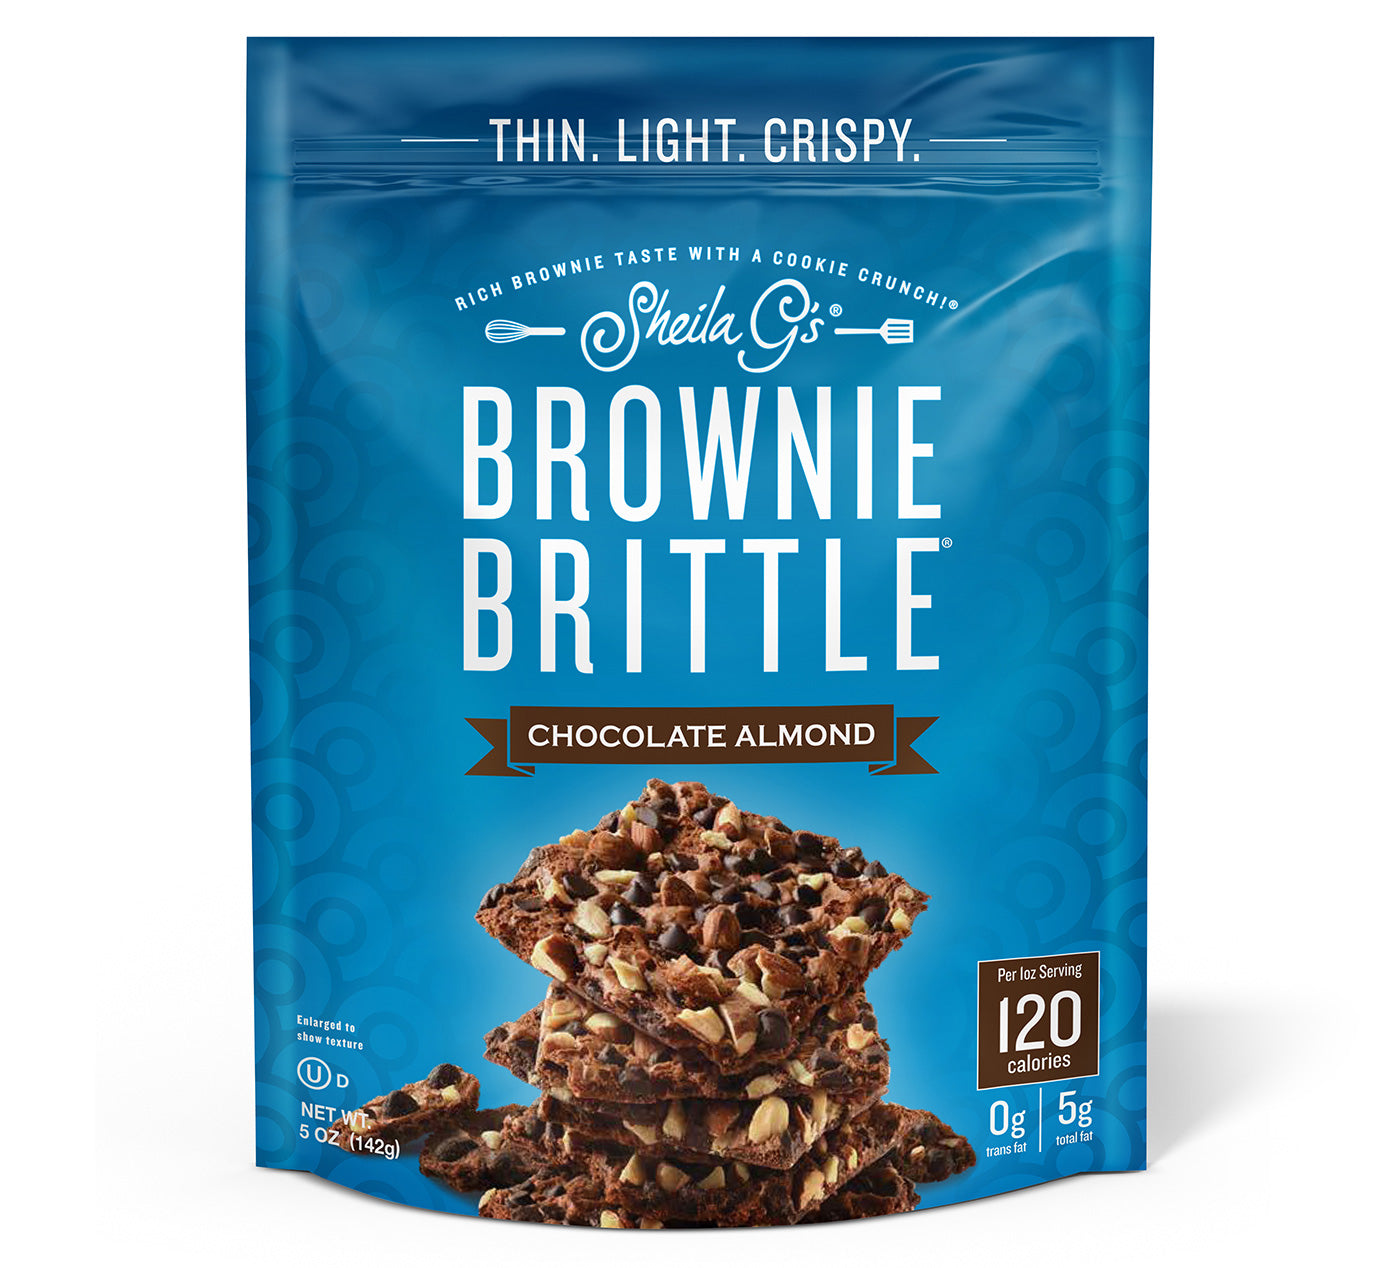 Brownie Brittle Chocolate Almond